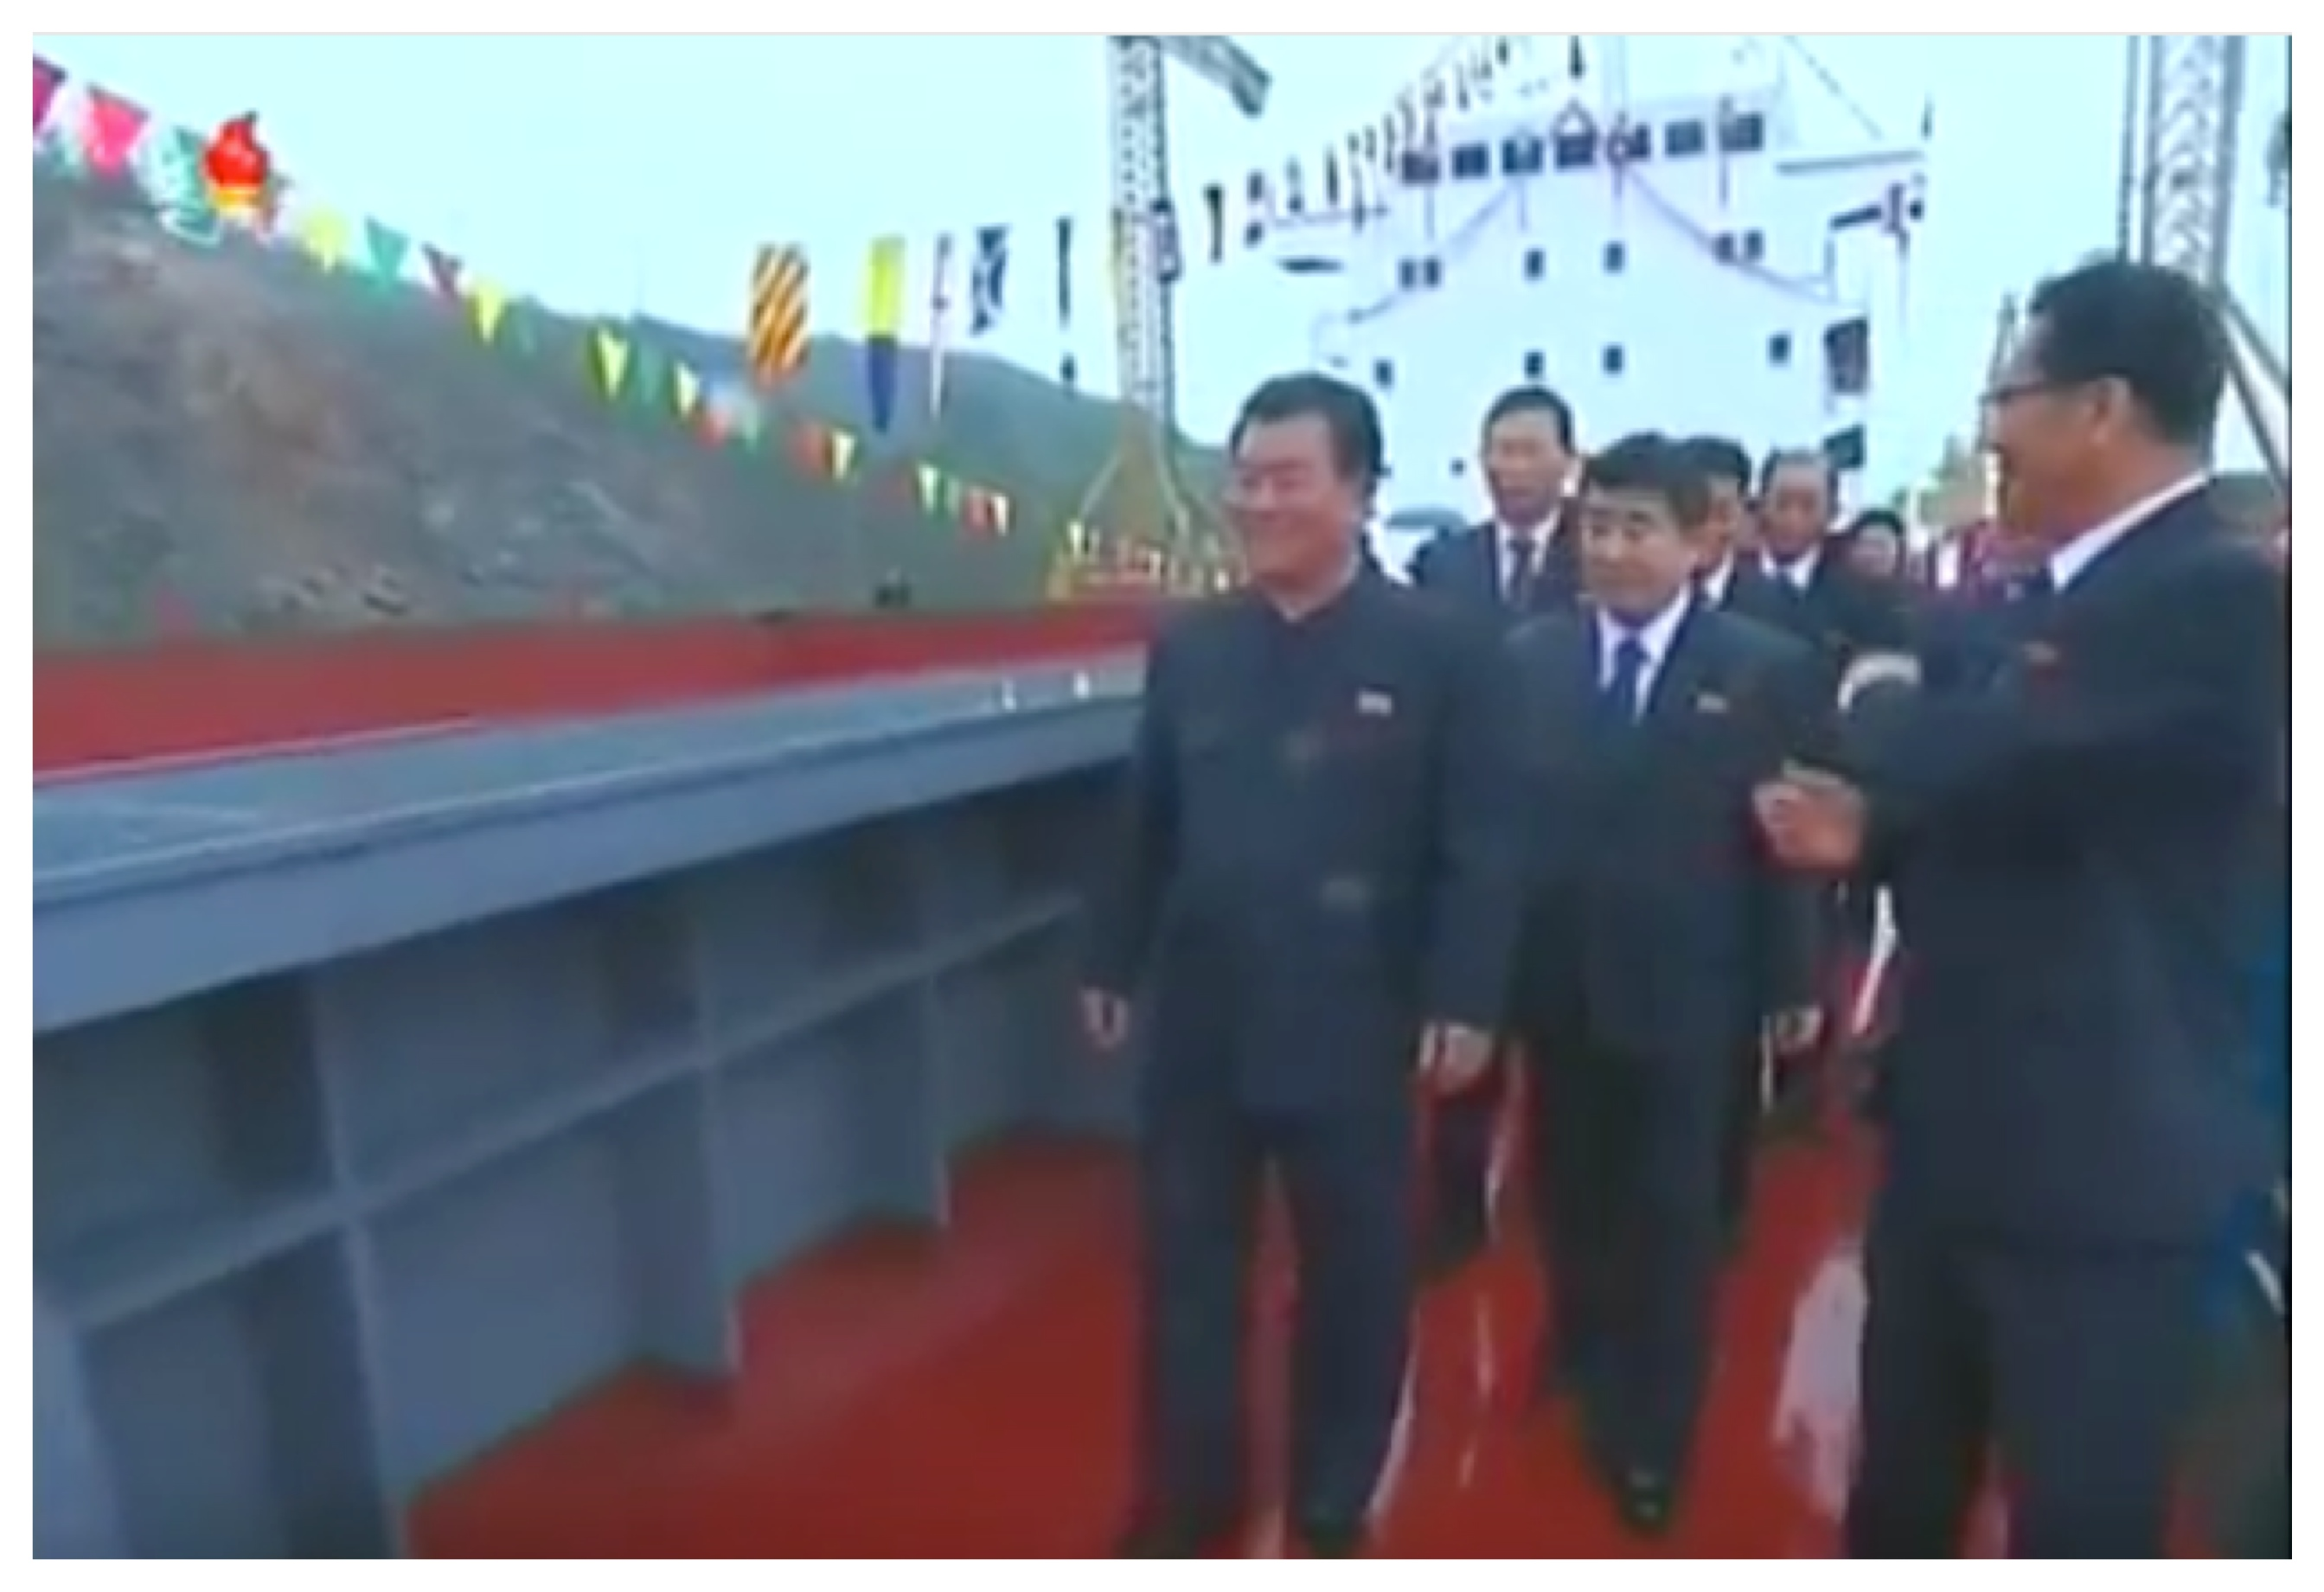 Minister of Land and Marine Transport Kang Jong Gwan briefs WPK Vice Chairman O Su Yong on the Jaryok (Photo: Korean Central TV).